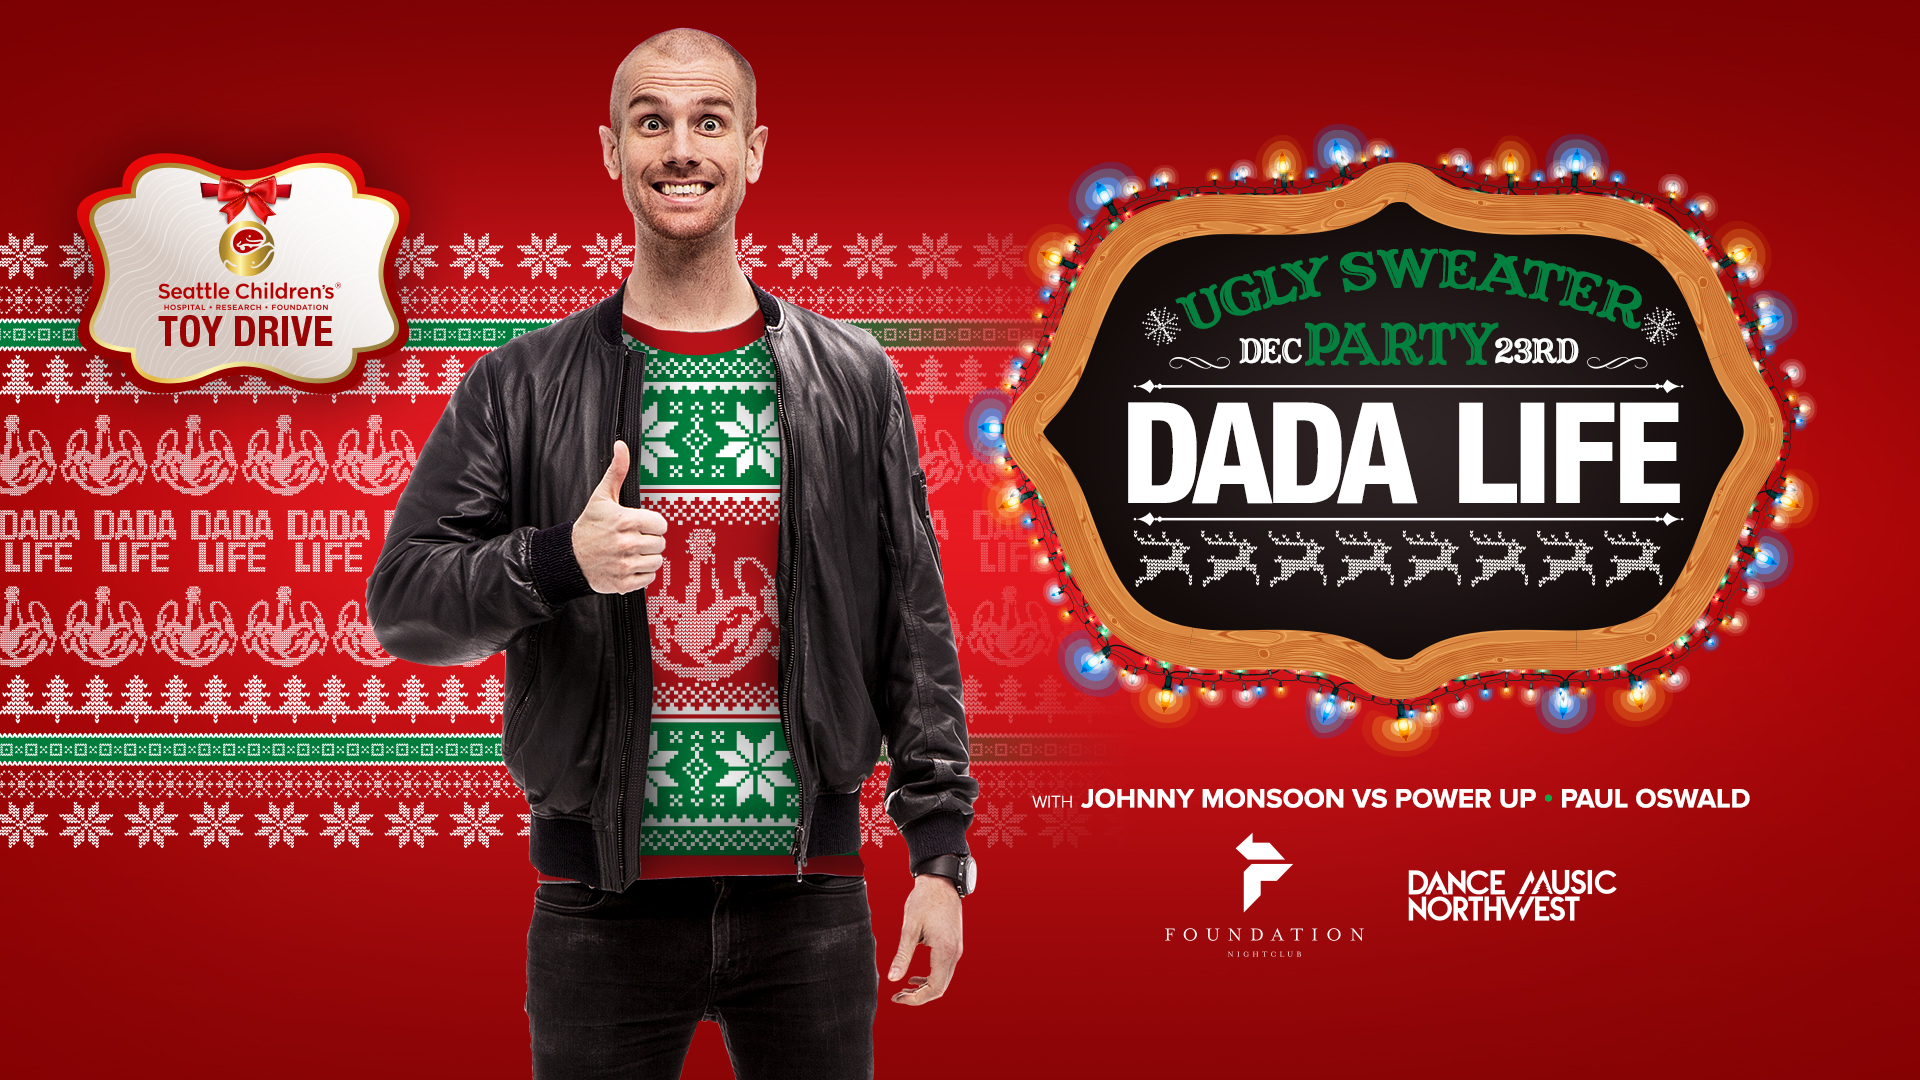 dada life ugly sweater party seattle childrens